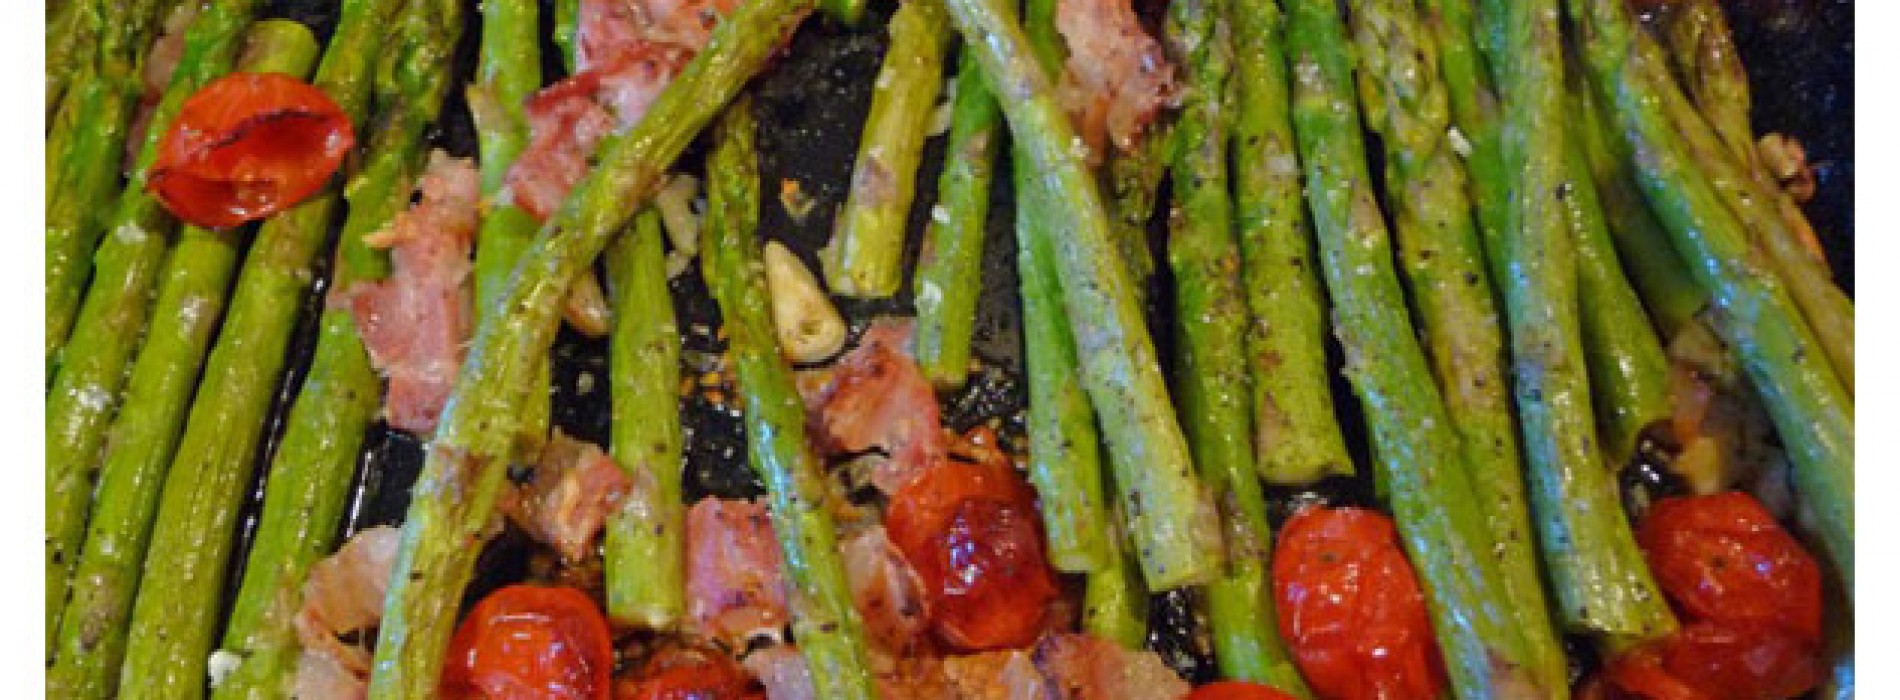 Roast Asparagus with Cherry Tomatoes and Bacon